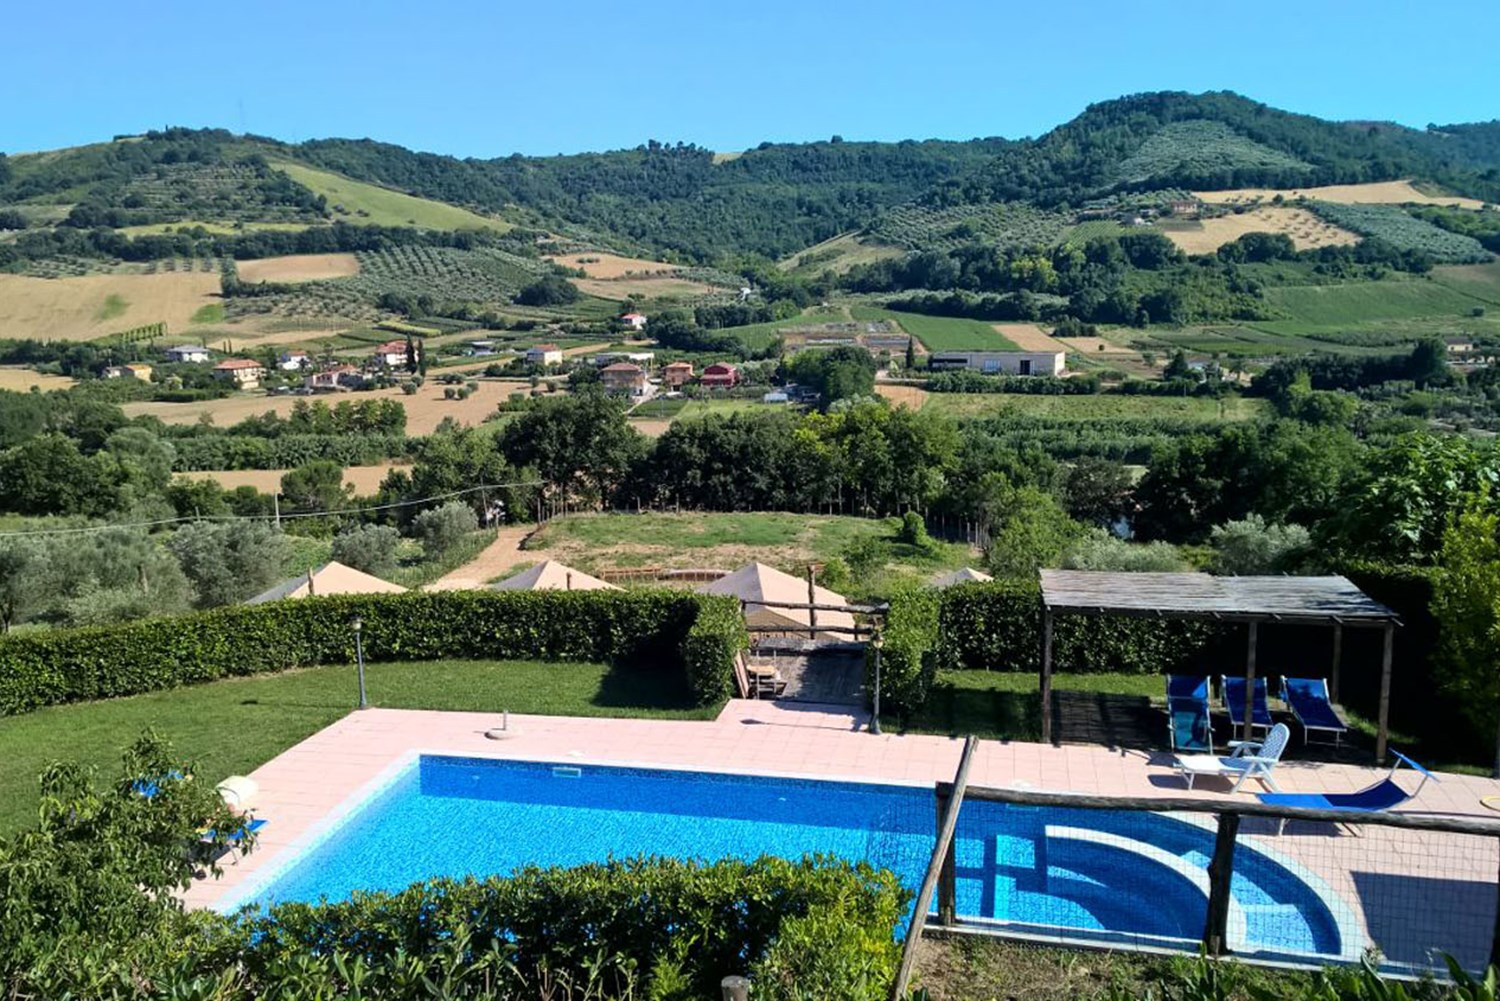 Countryhouse Il Girasole - luxe agriturismo's in de Marche